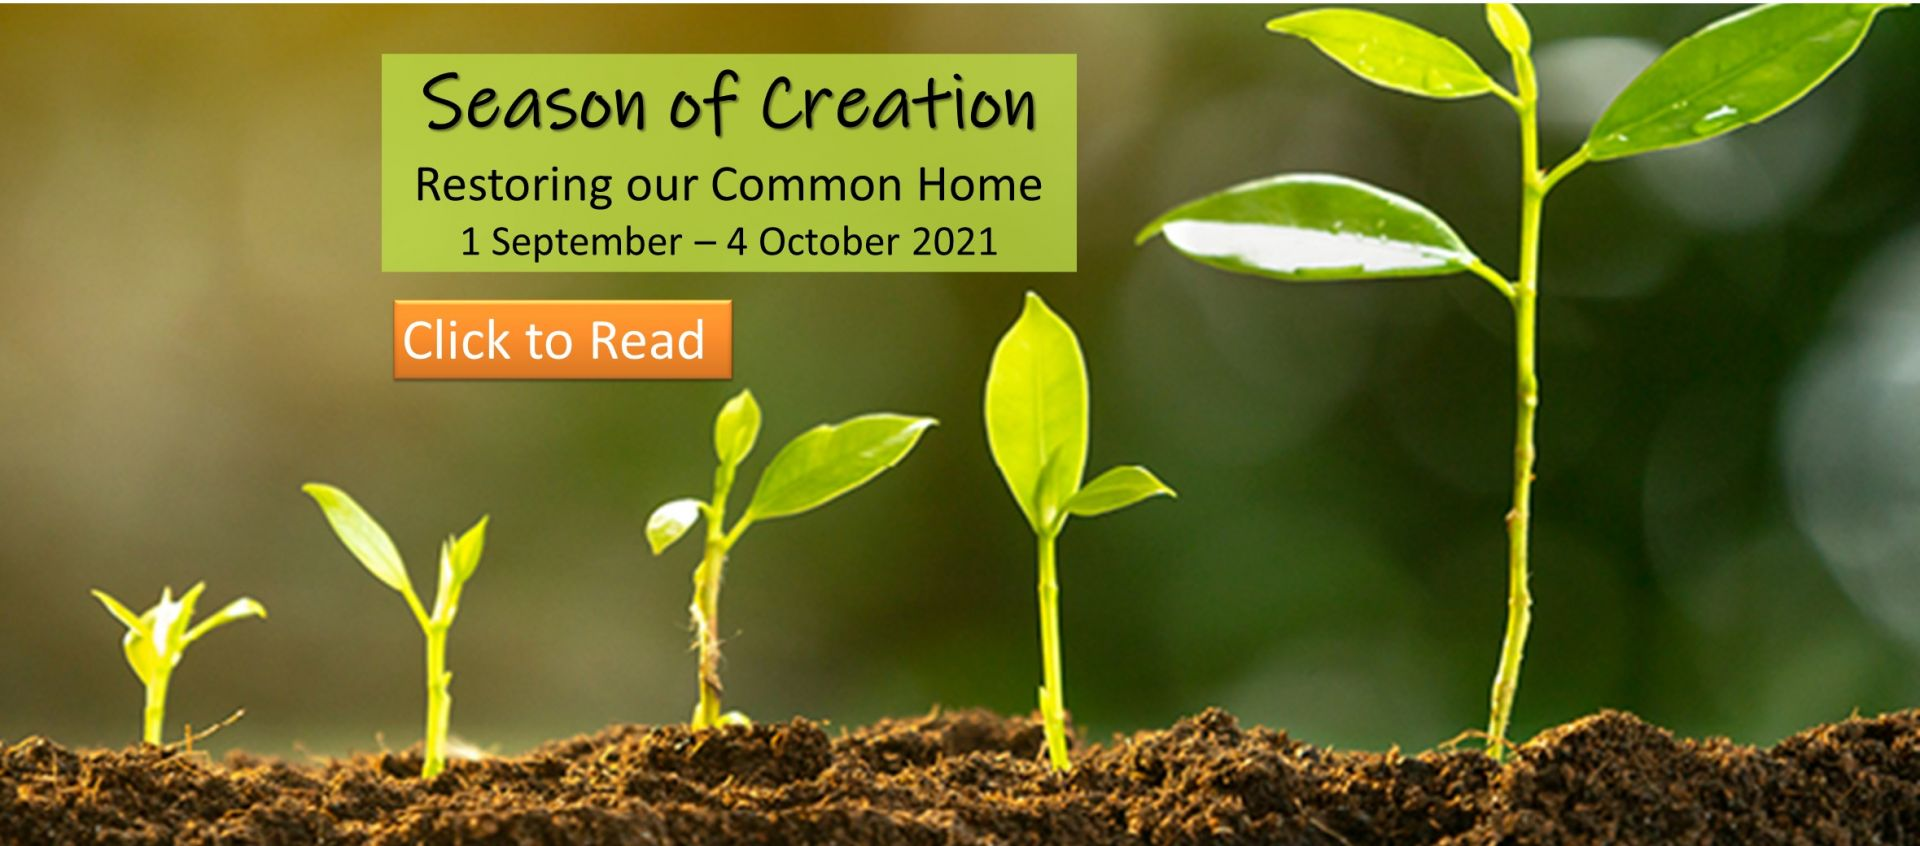 Season of Creation and PAtrola Letter from Archbishop Dermot Farrell